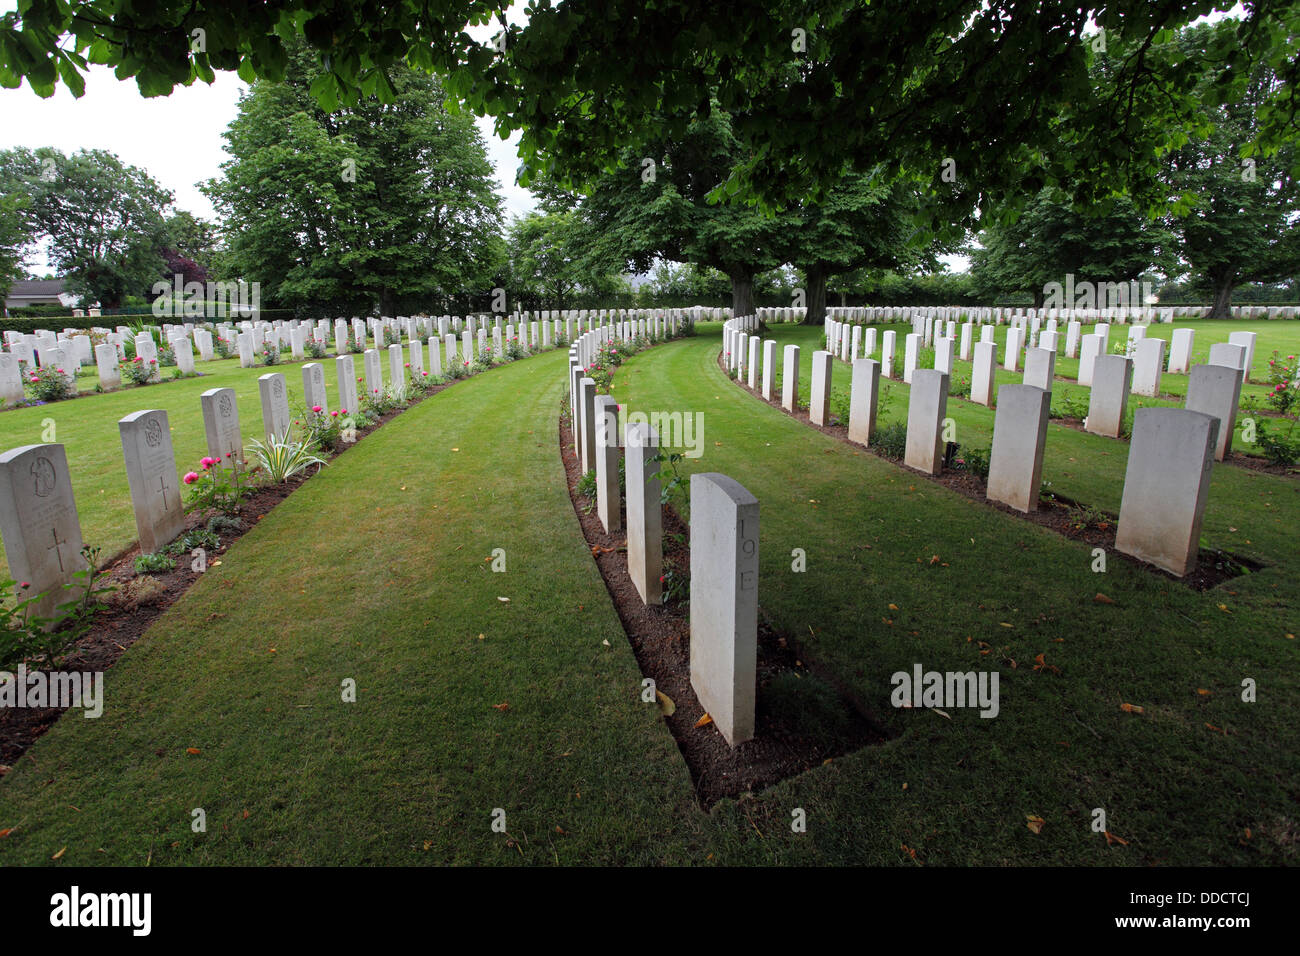 Ranks of Gravestones in a curve under trees in the British cemetery, Bayeux, Normandy France Stock Photo